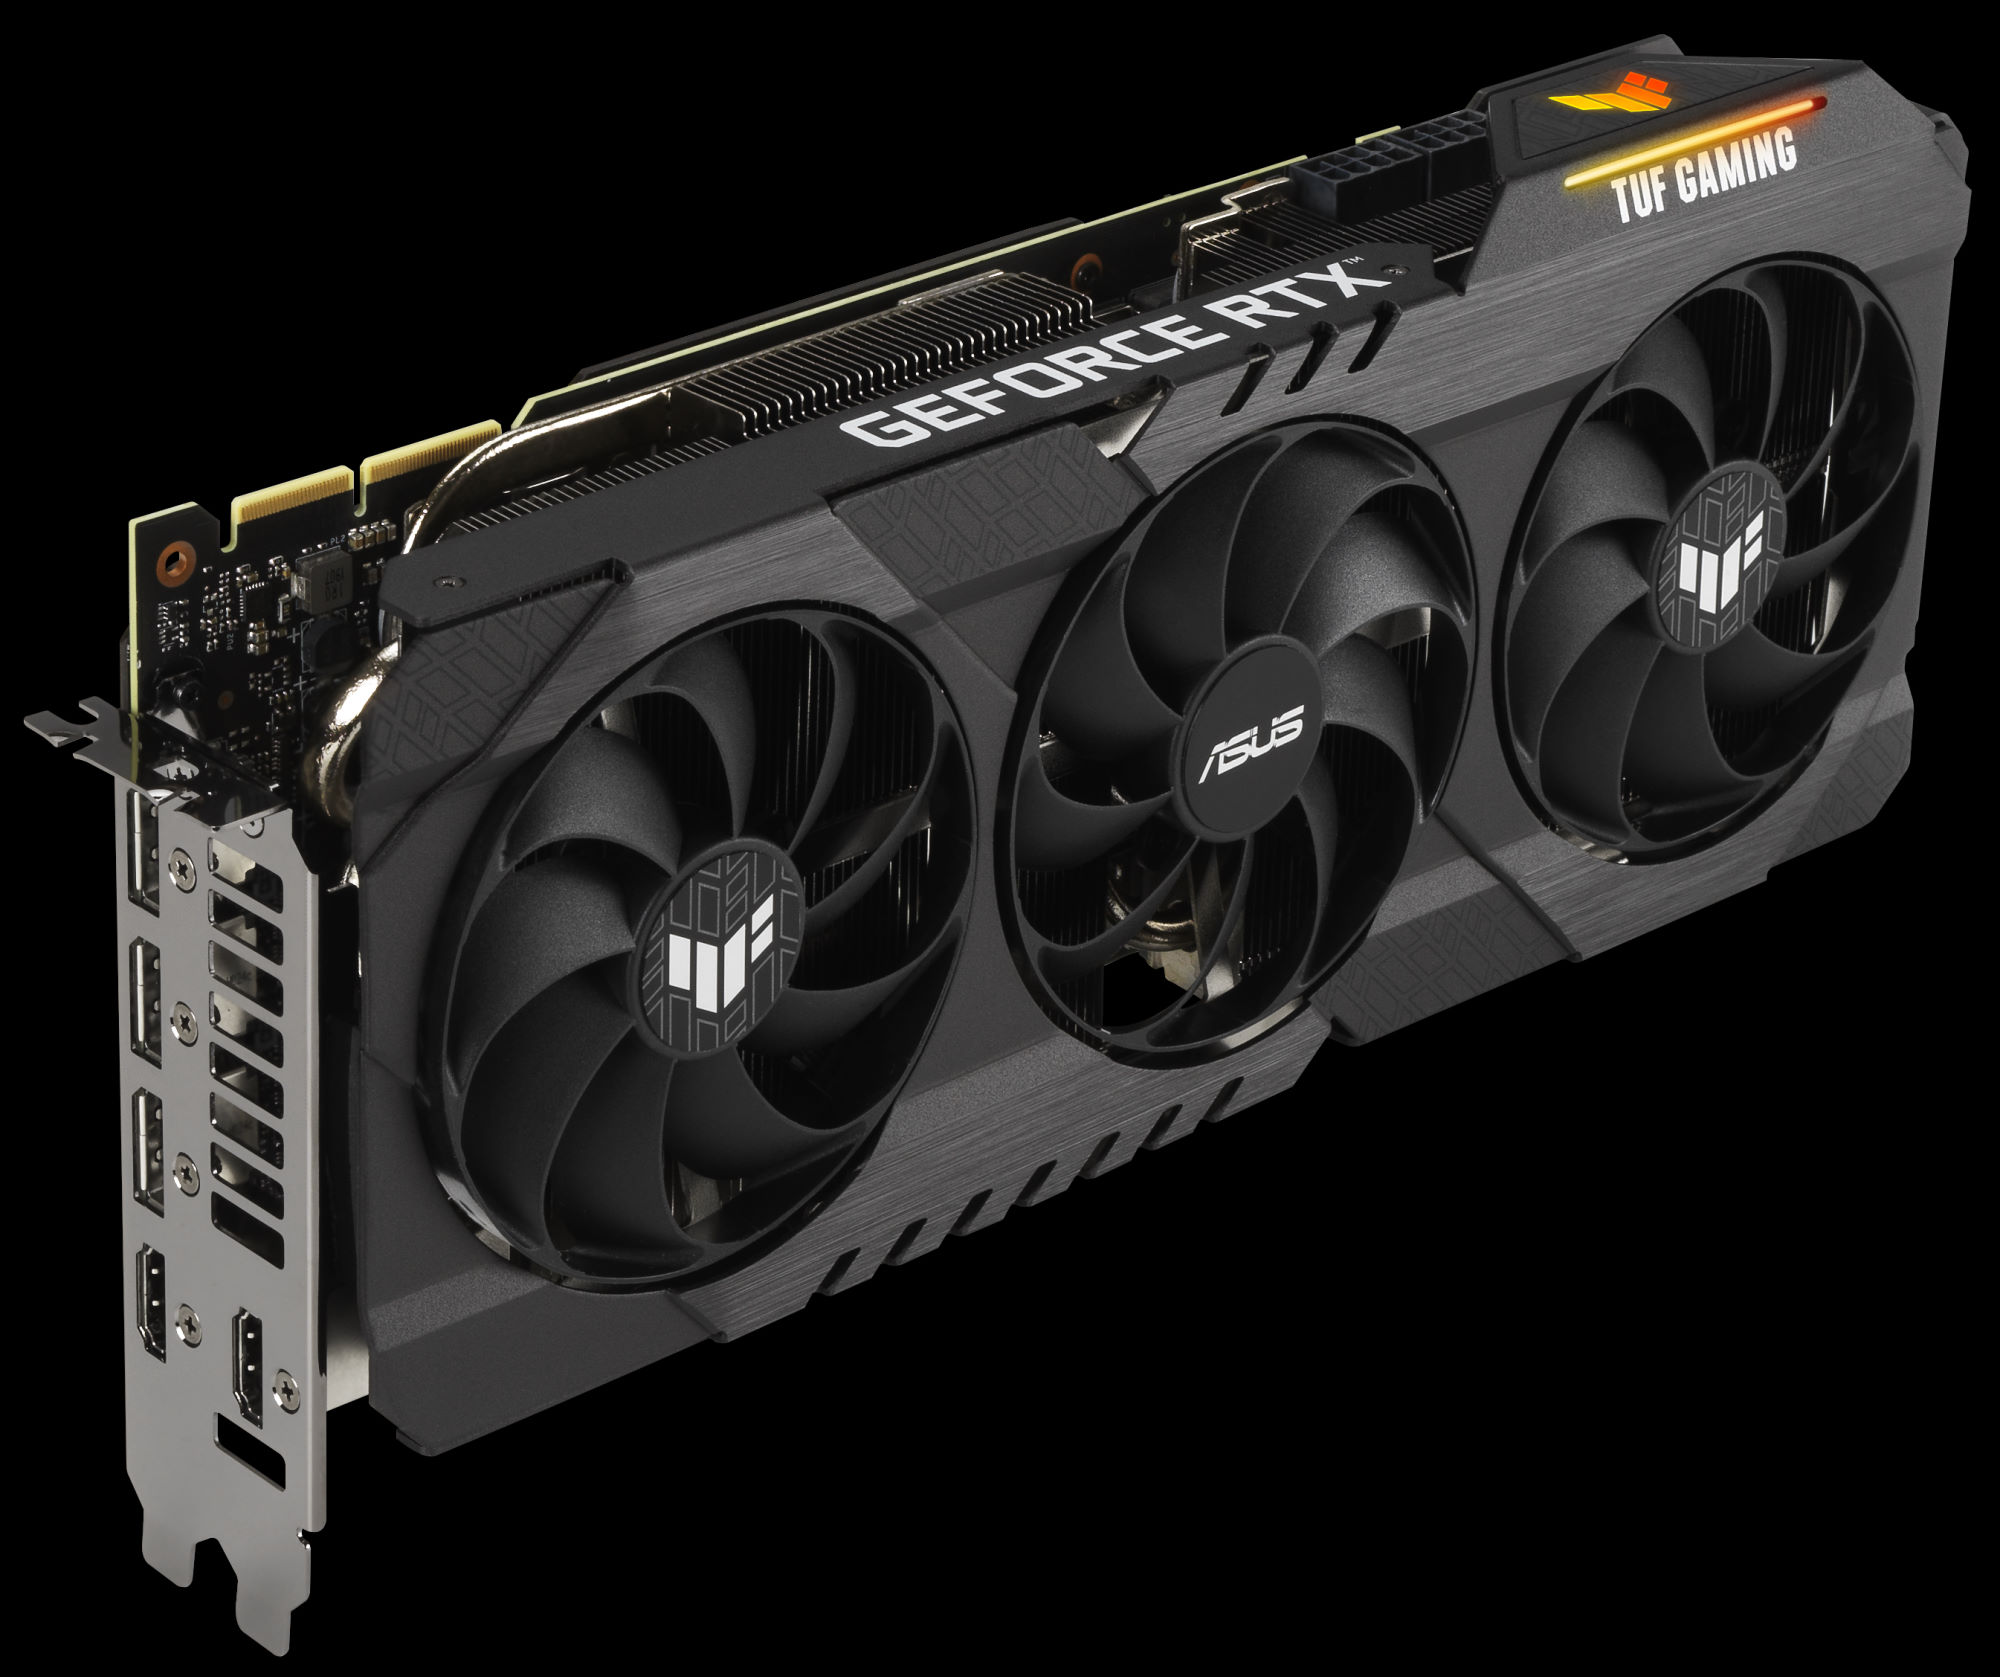 1598956814910 - Asus Nvidia Geforce RTX 3090 & 3080 Press Release